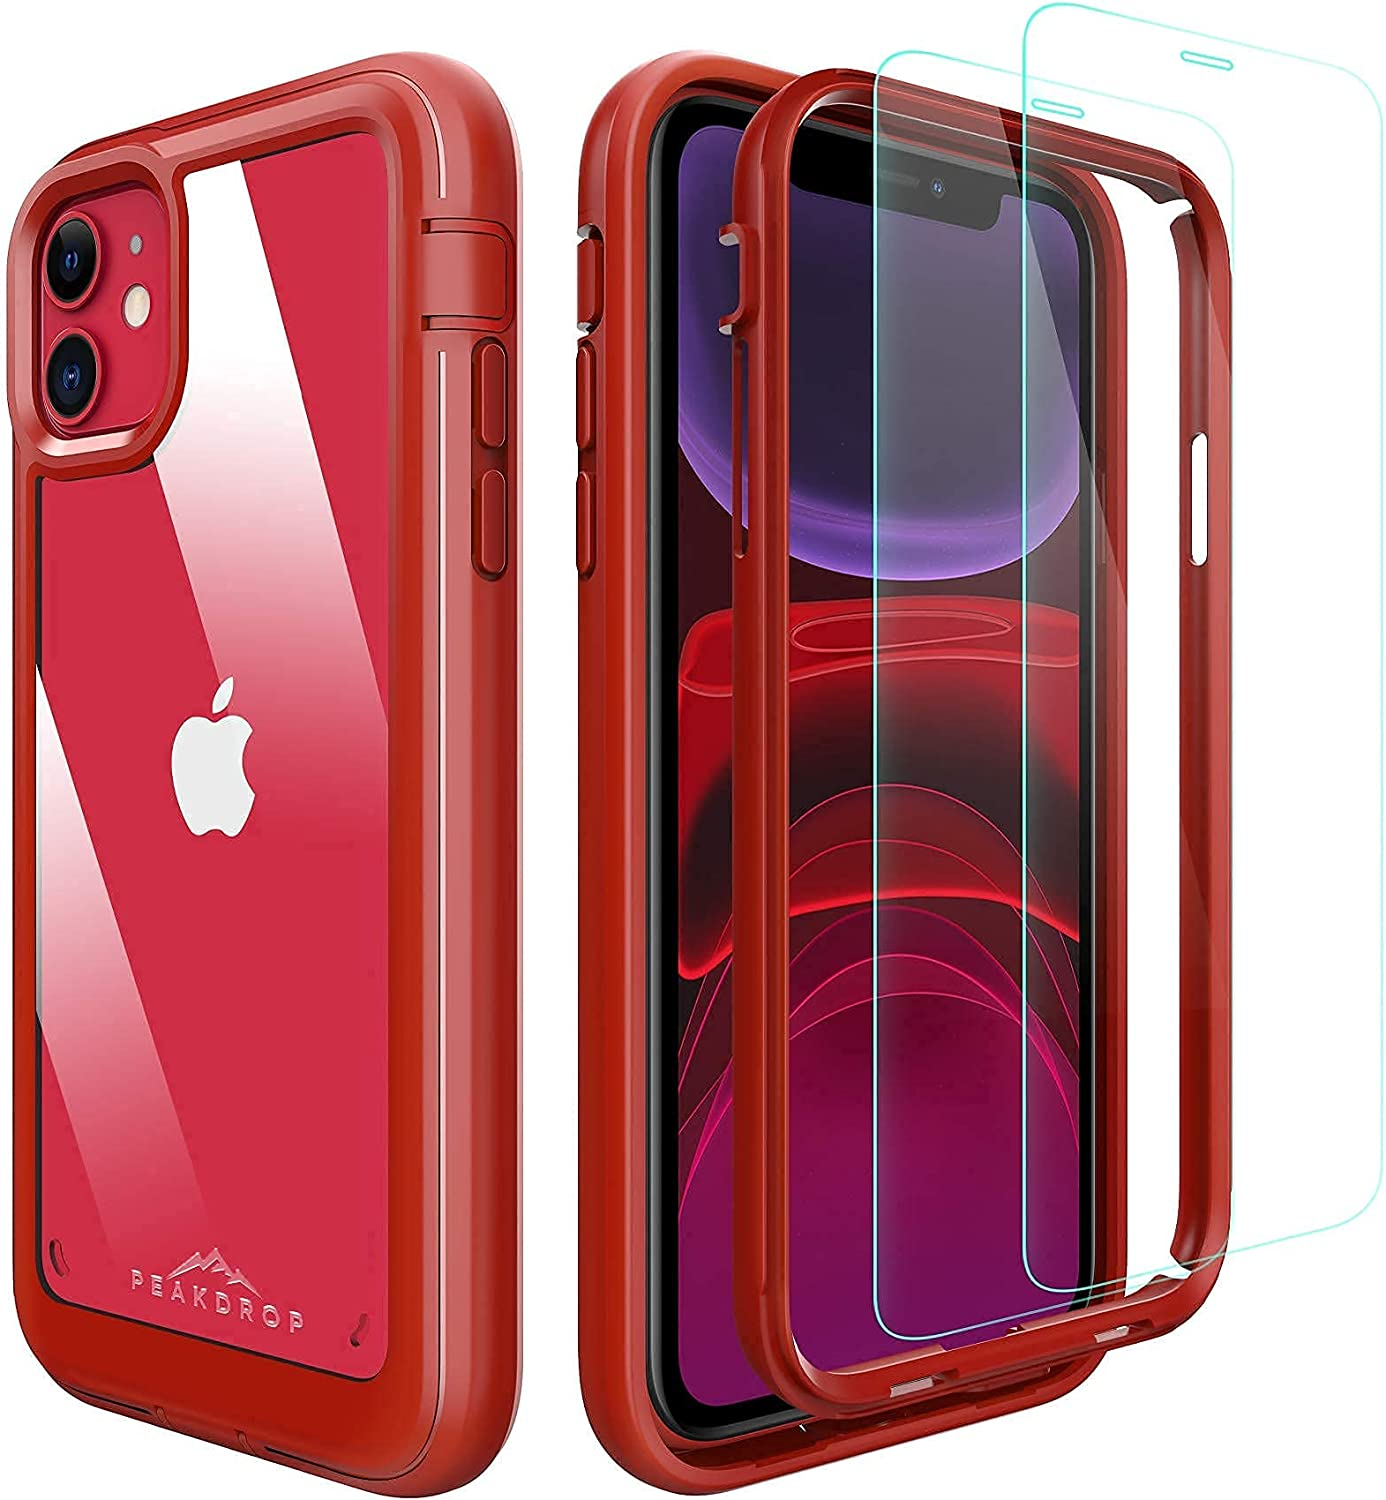 PeakDrop Compatible with iPhone 11 Case, Clear Full Body Heavy Duty Protective Case Full Body Transparent Cover Designed for iPhone 11 (2X Glass Screen Protector Included) (6.1 inch, 2019) - Red